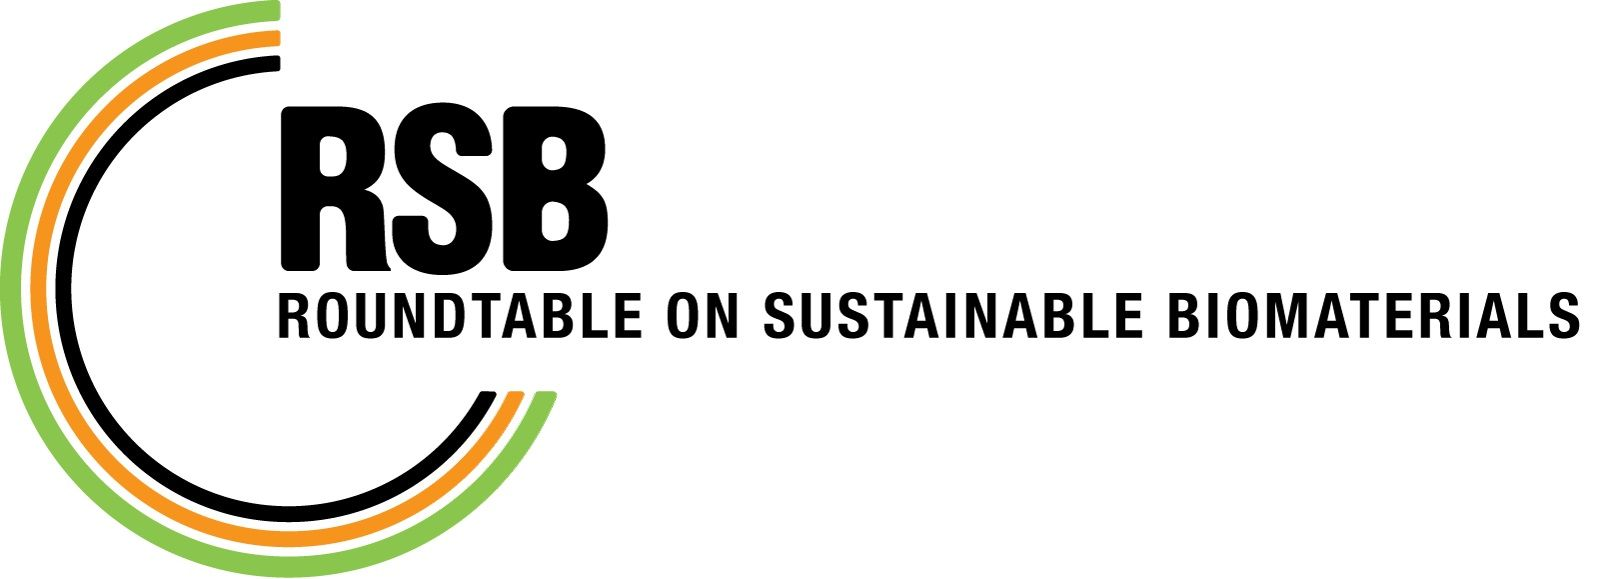 Roundtable on Sustainable Biomaterials (RSB) Logo